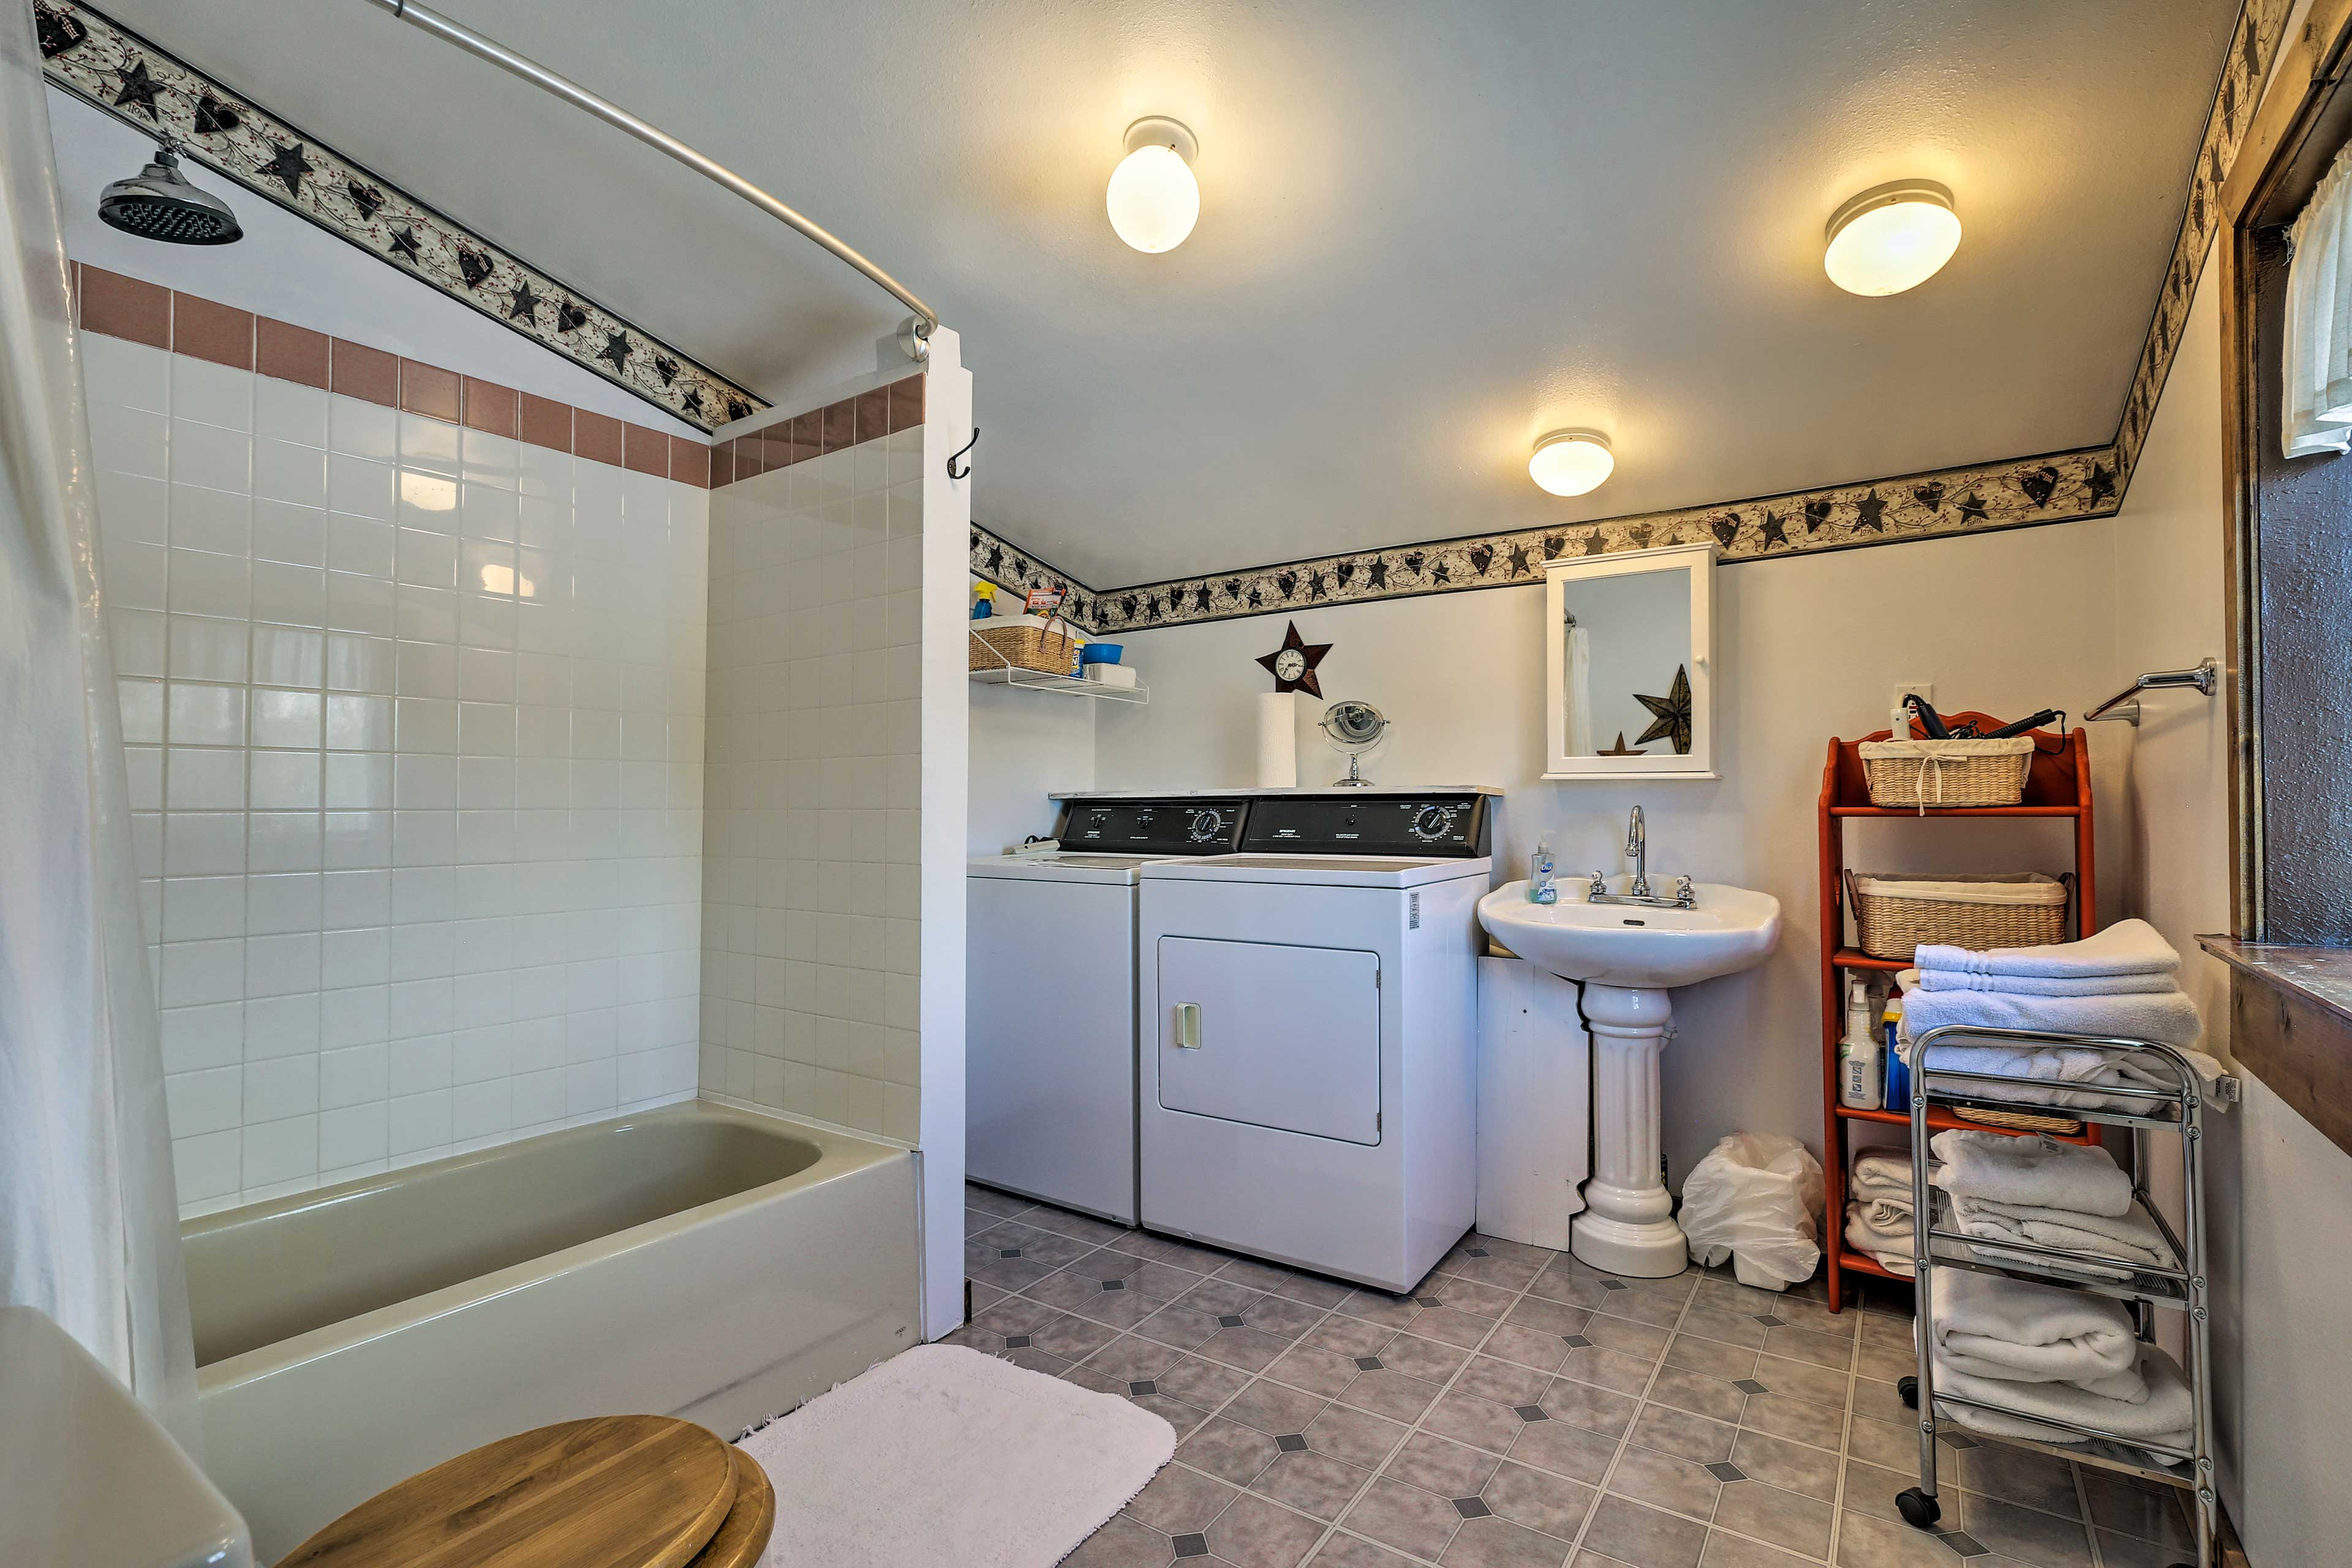 The bathroom has a shower/tub combo and in-unit laundry machines.